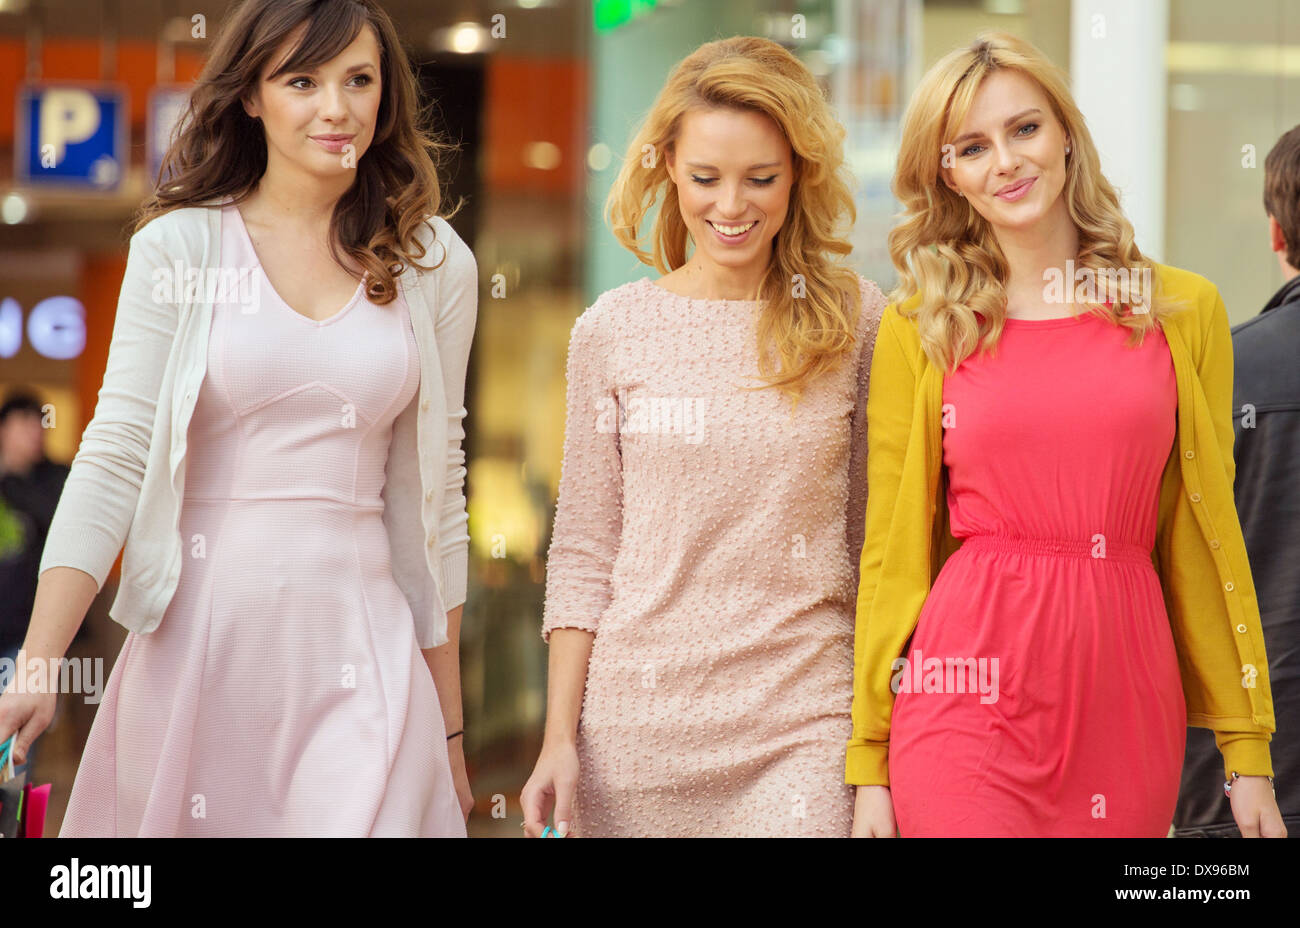 Three cheerful ladies in the shopping mall - Stock Image